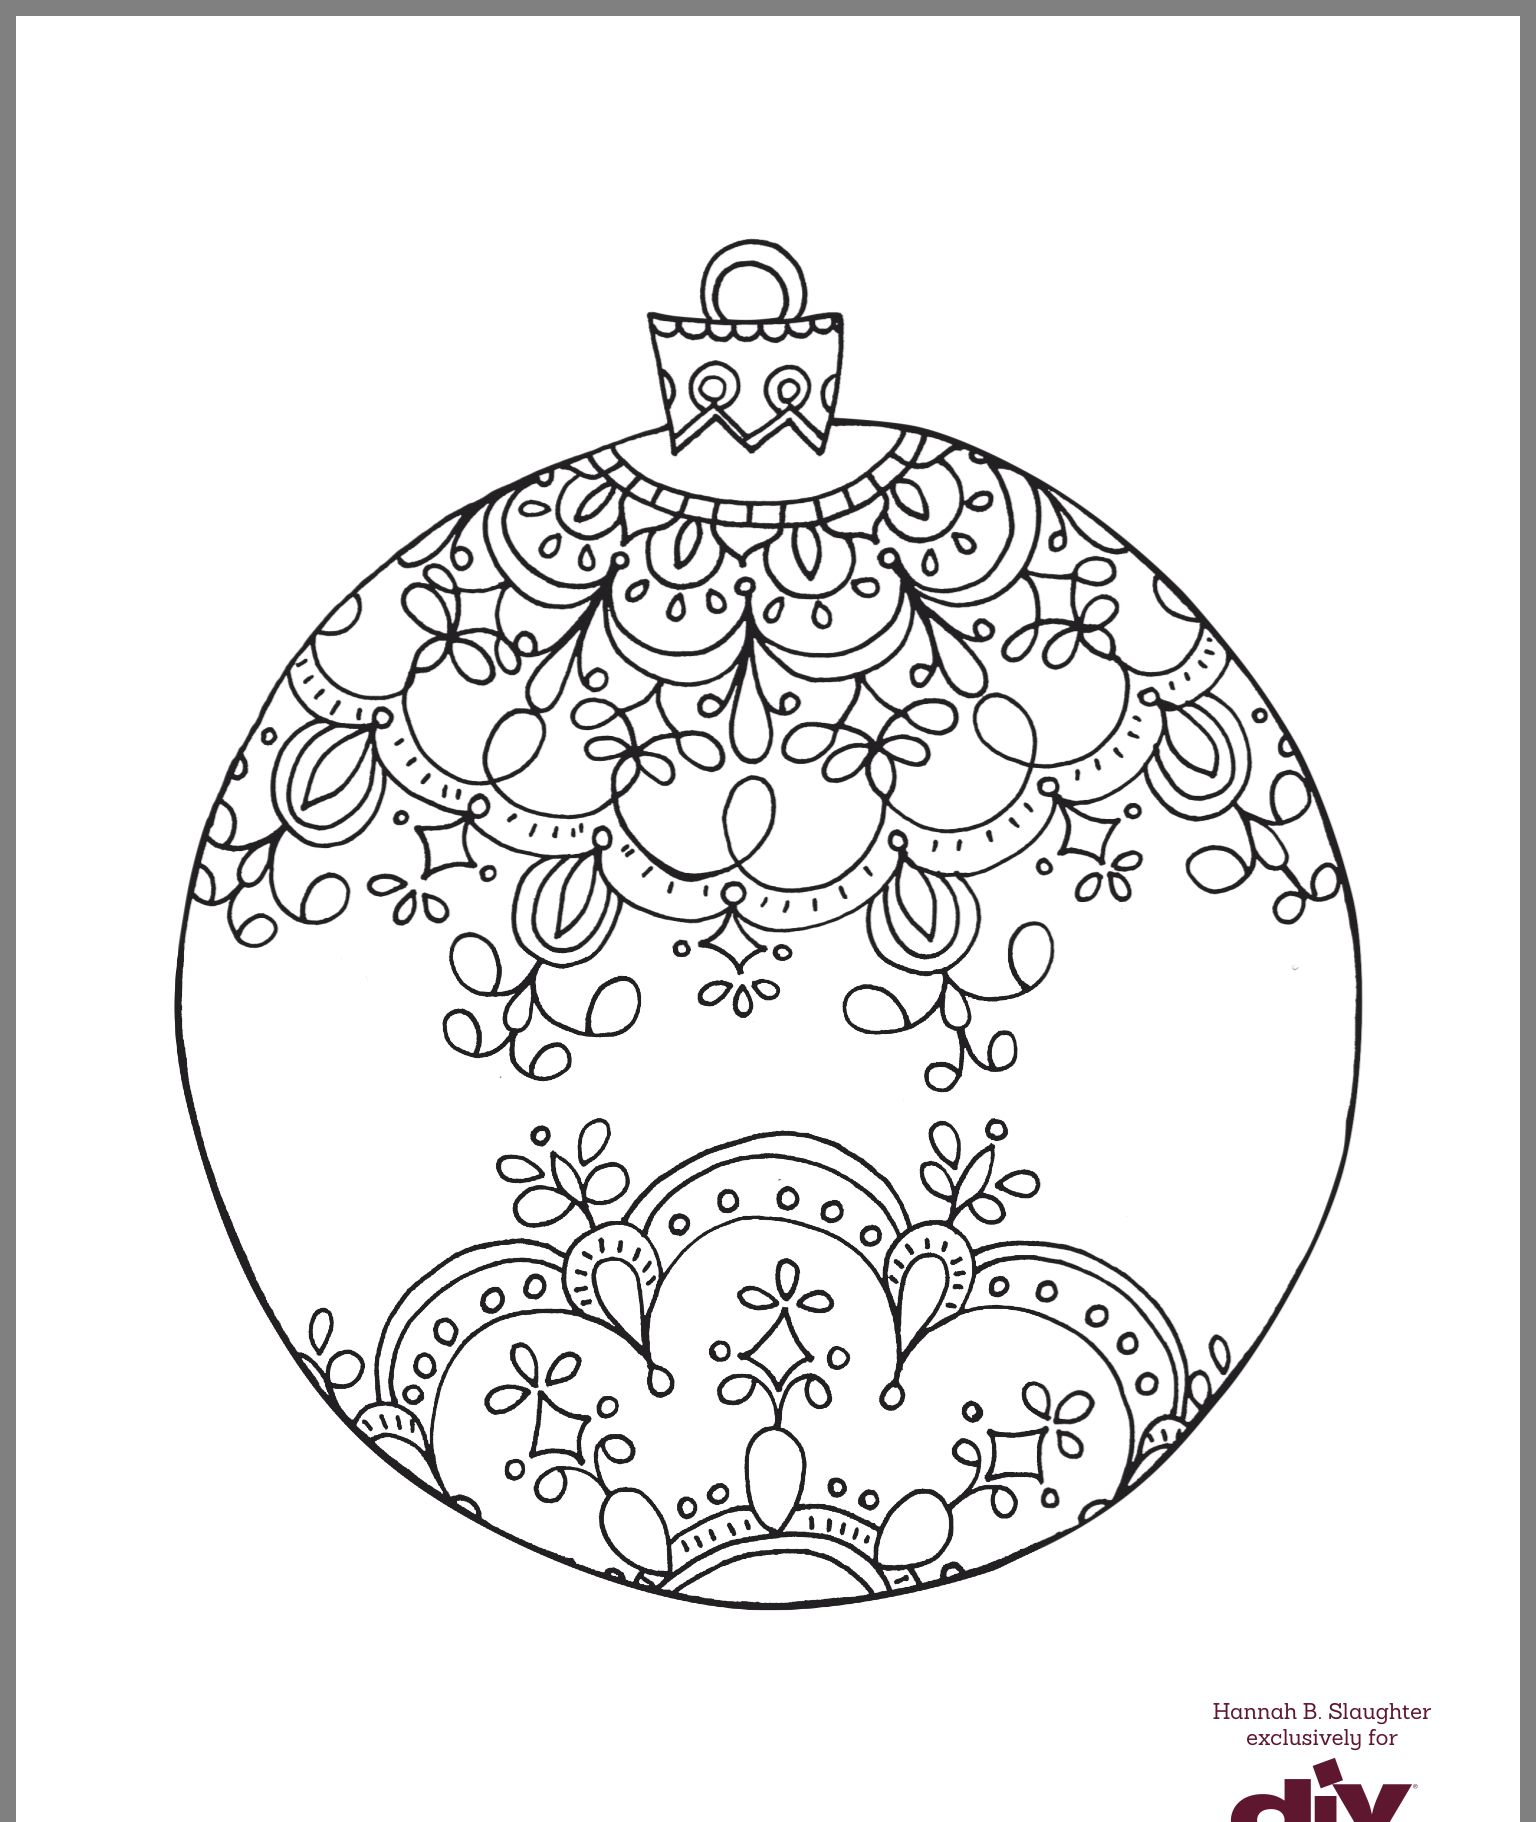 Pin by Kori Taylor on Clever crafts | Adult coloring pages ...